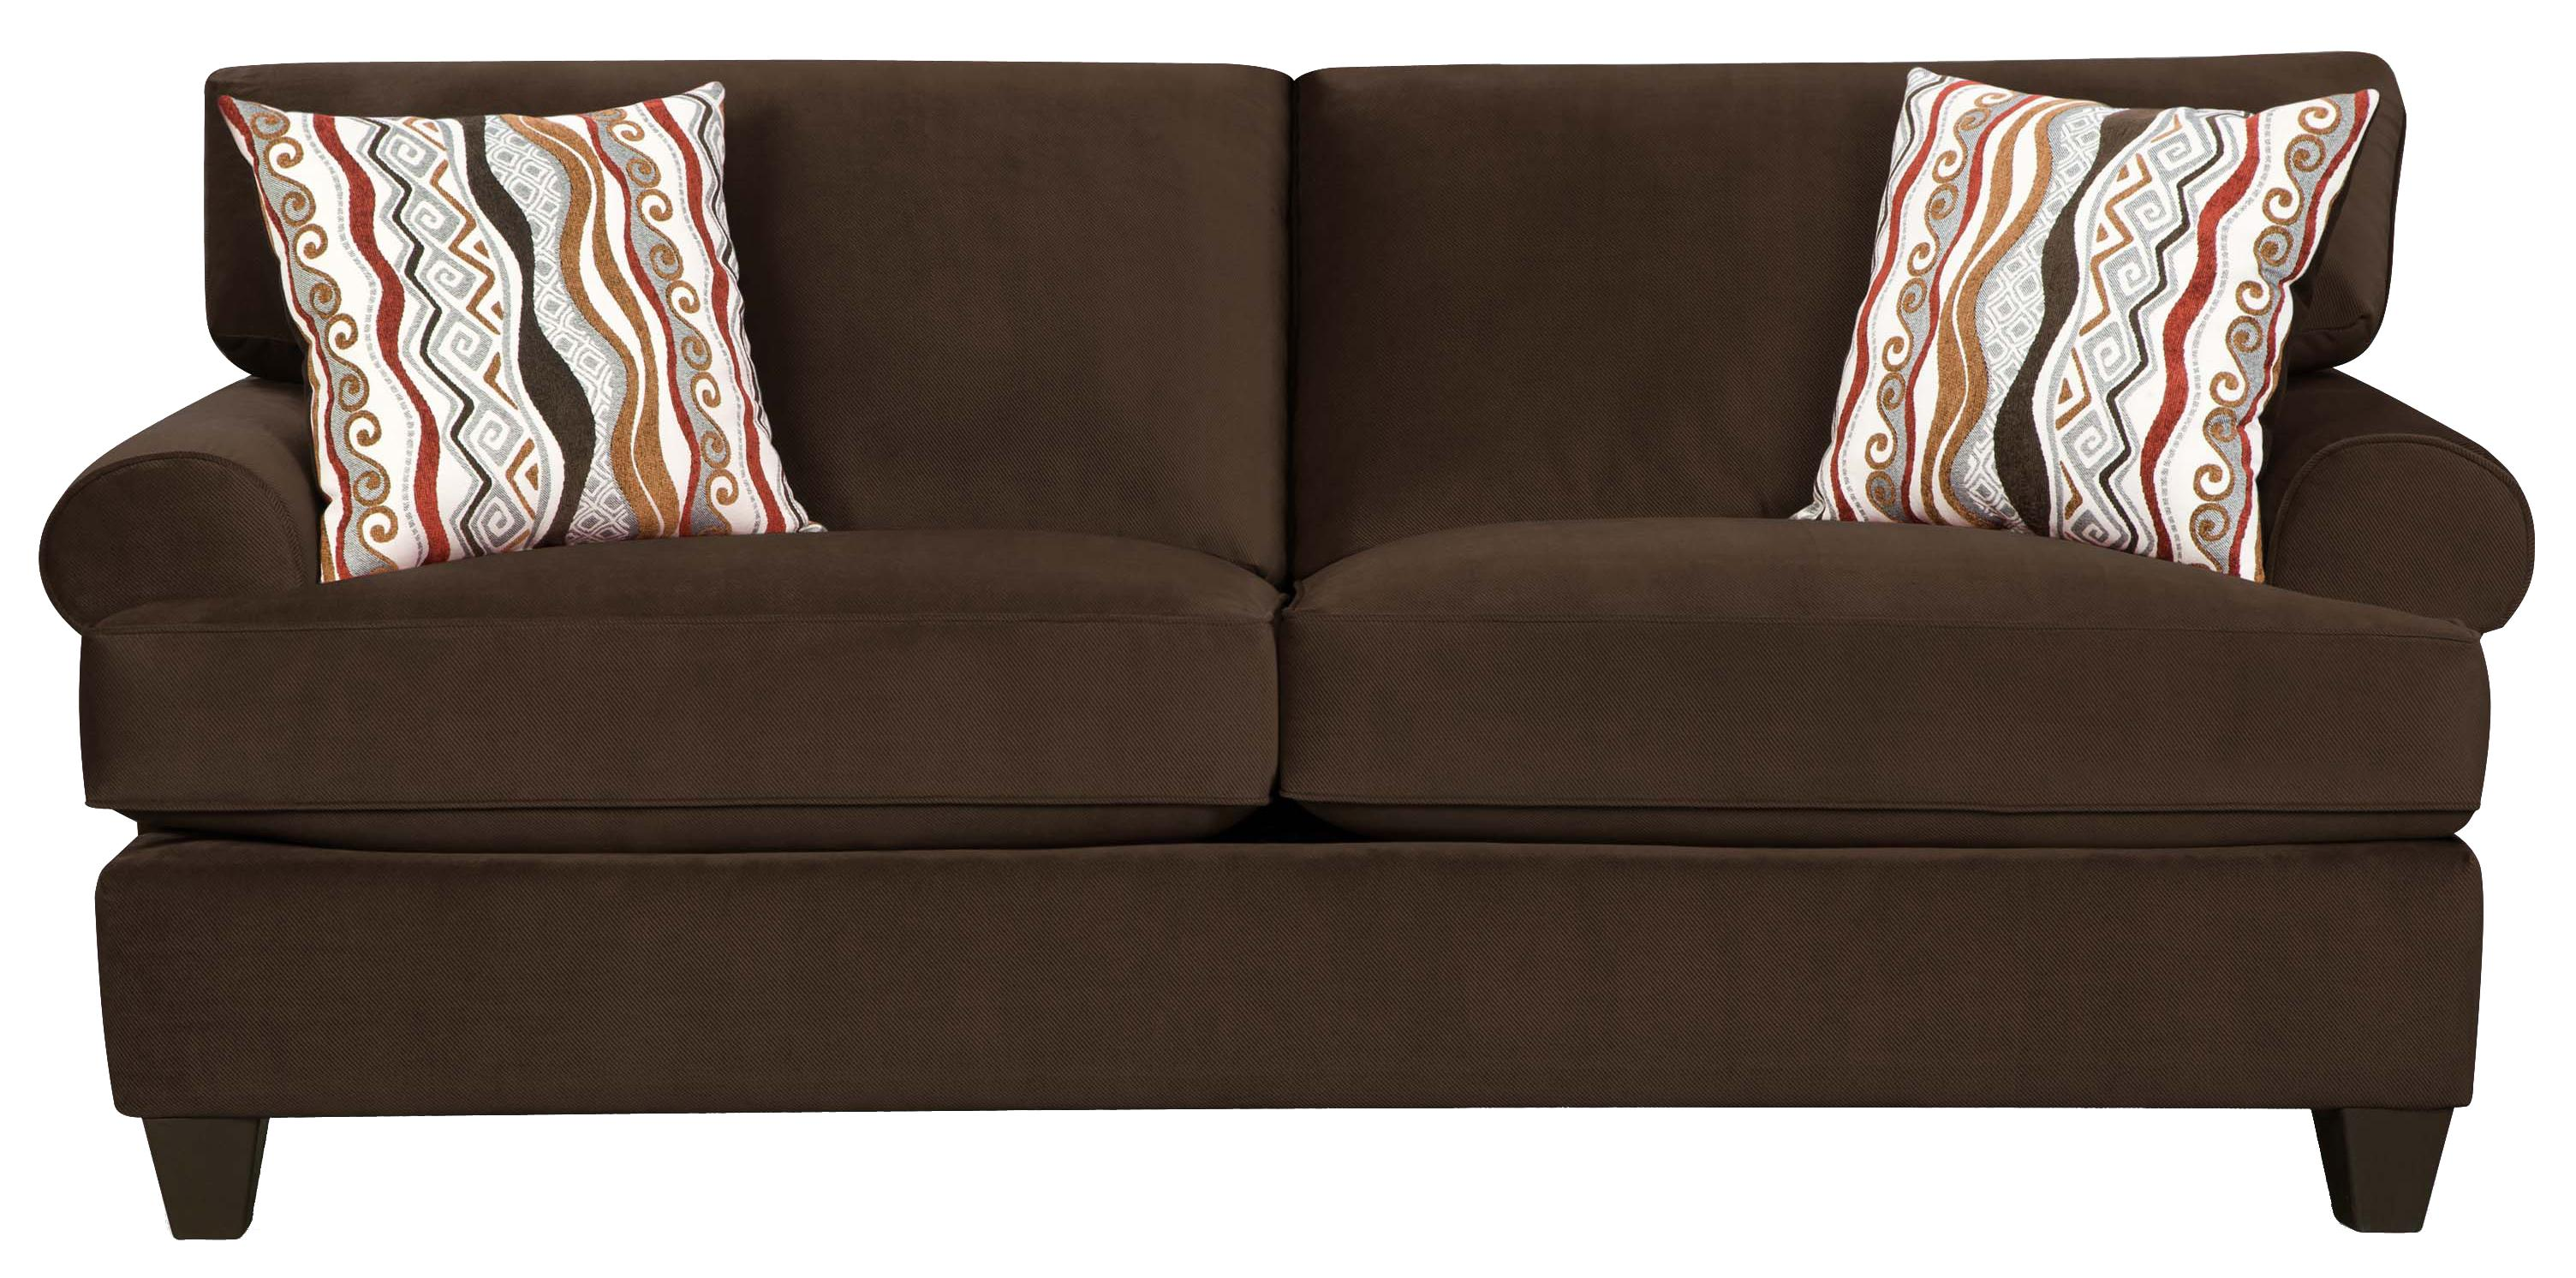 47A0  Sleeper Sofa by Corinthian at Story & Lee Furniture